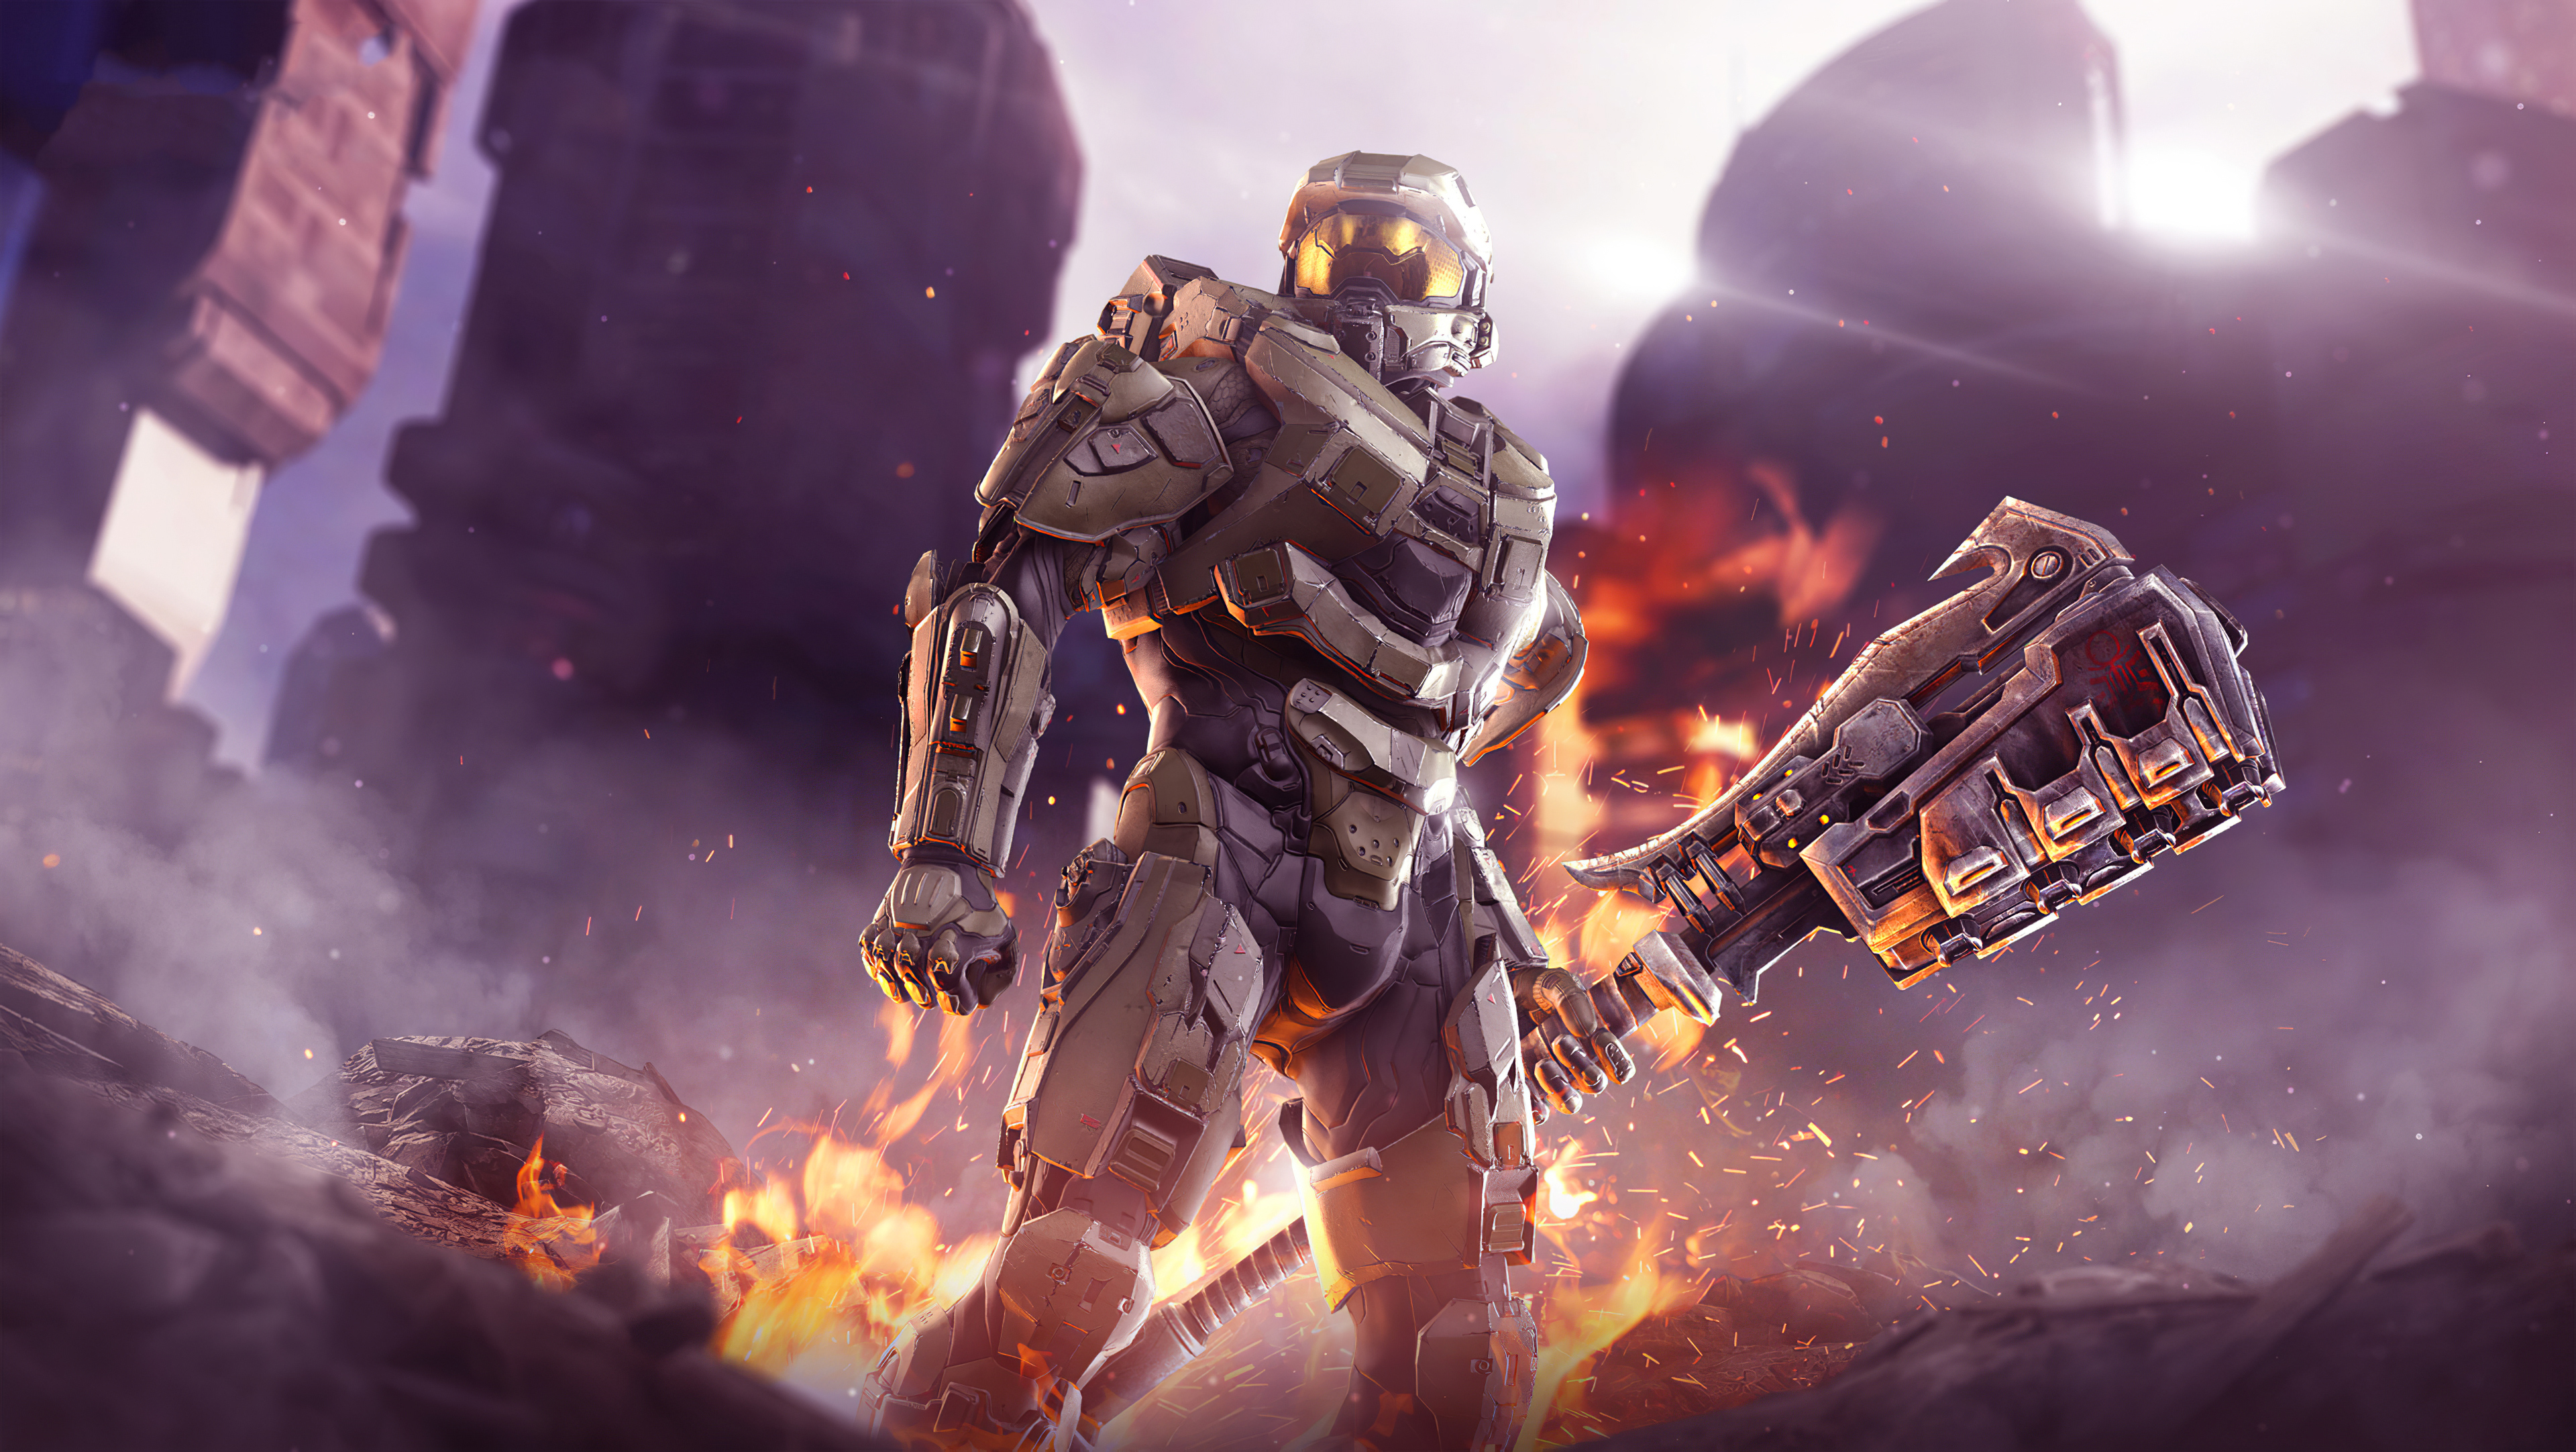 Halo 4k 2020, HD Games, 4k Wallpapers, Images, Backgrounds ...